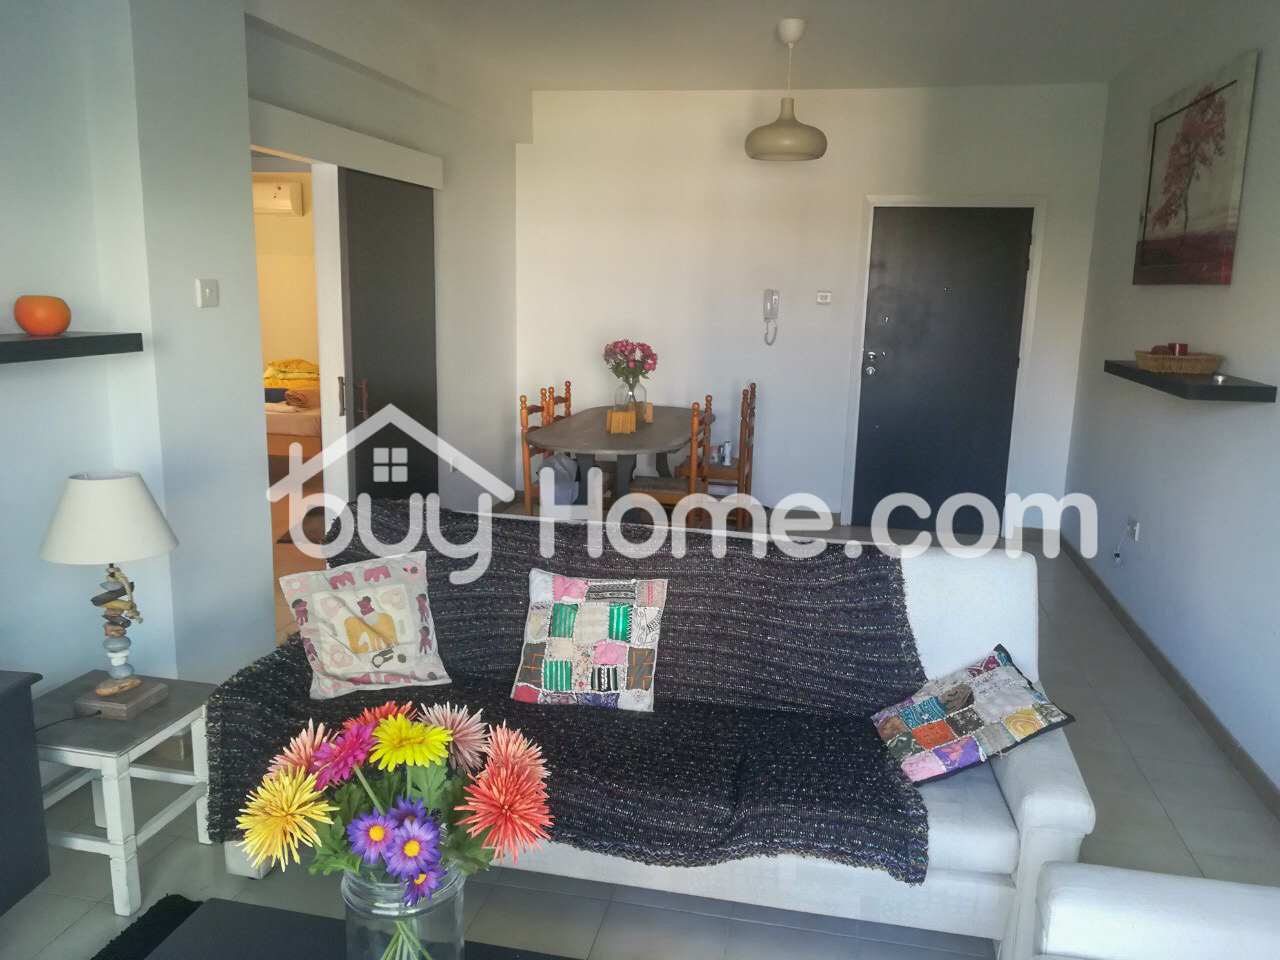 Two Bedroom Apartment | BuyHome